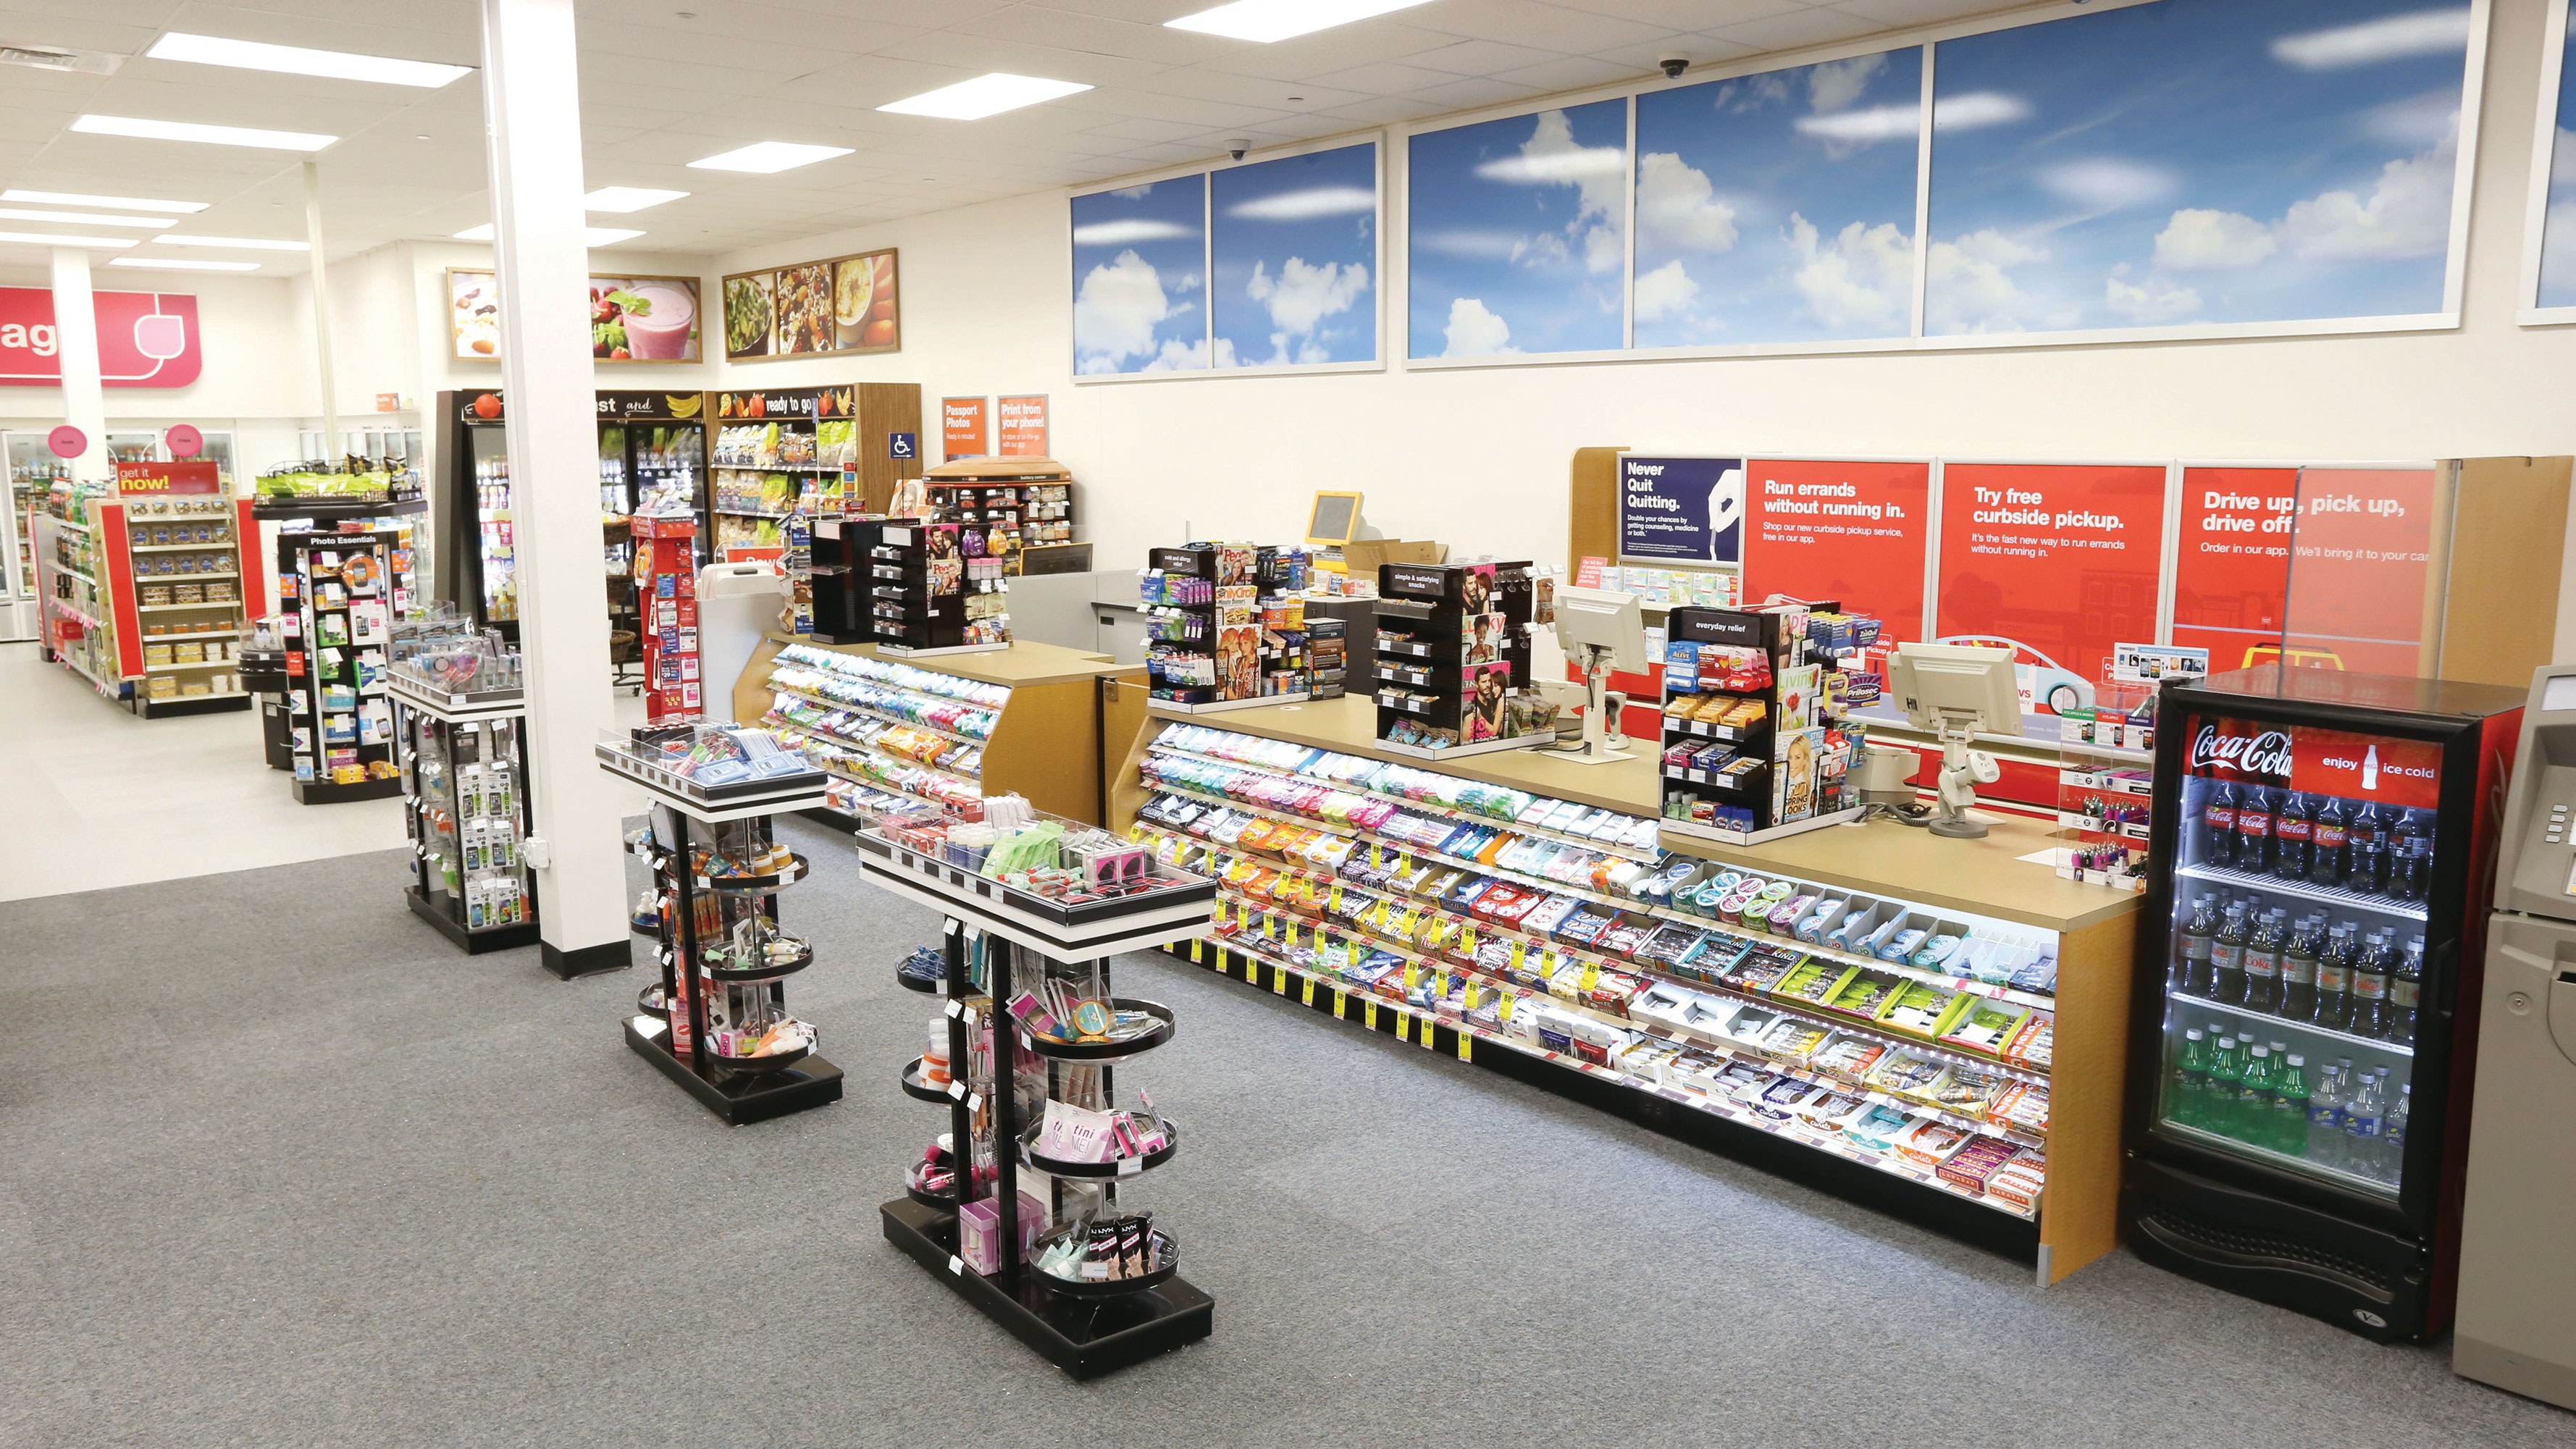 Interior of a CVS Pharmacy store near the checkout area